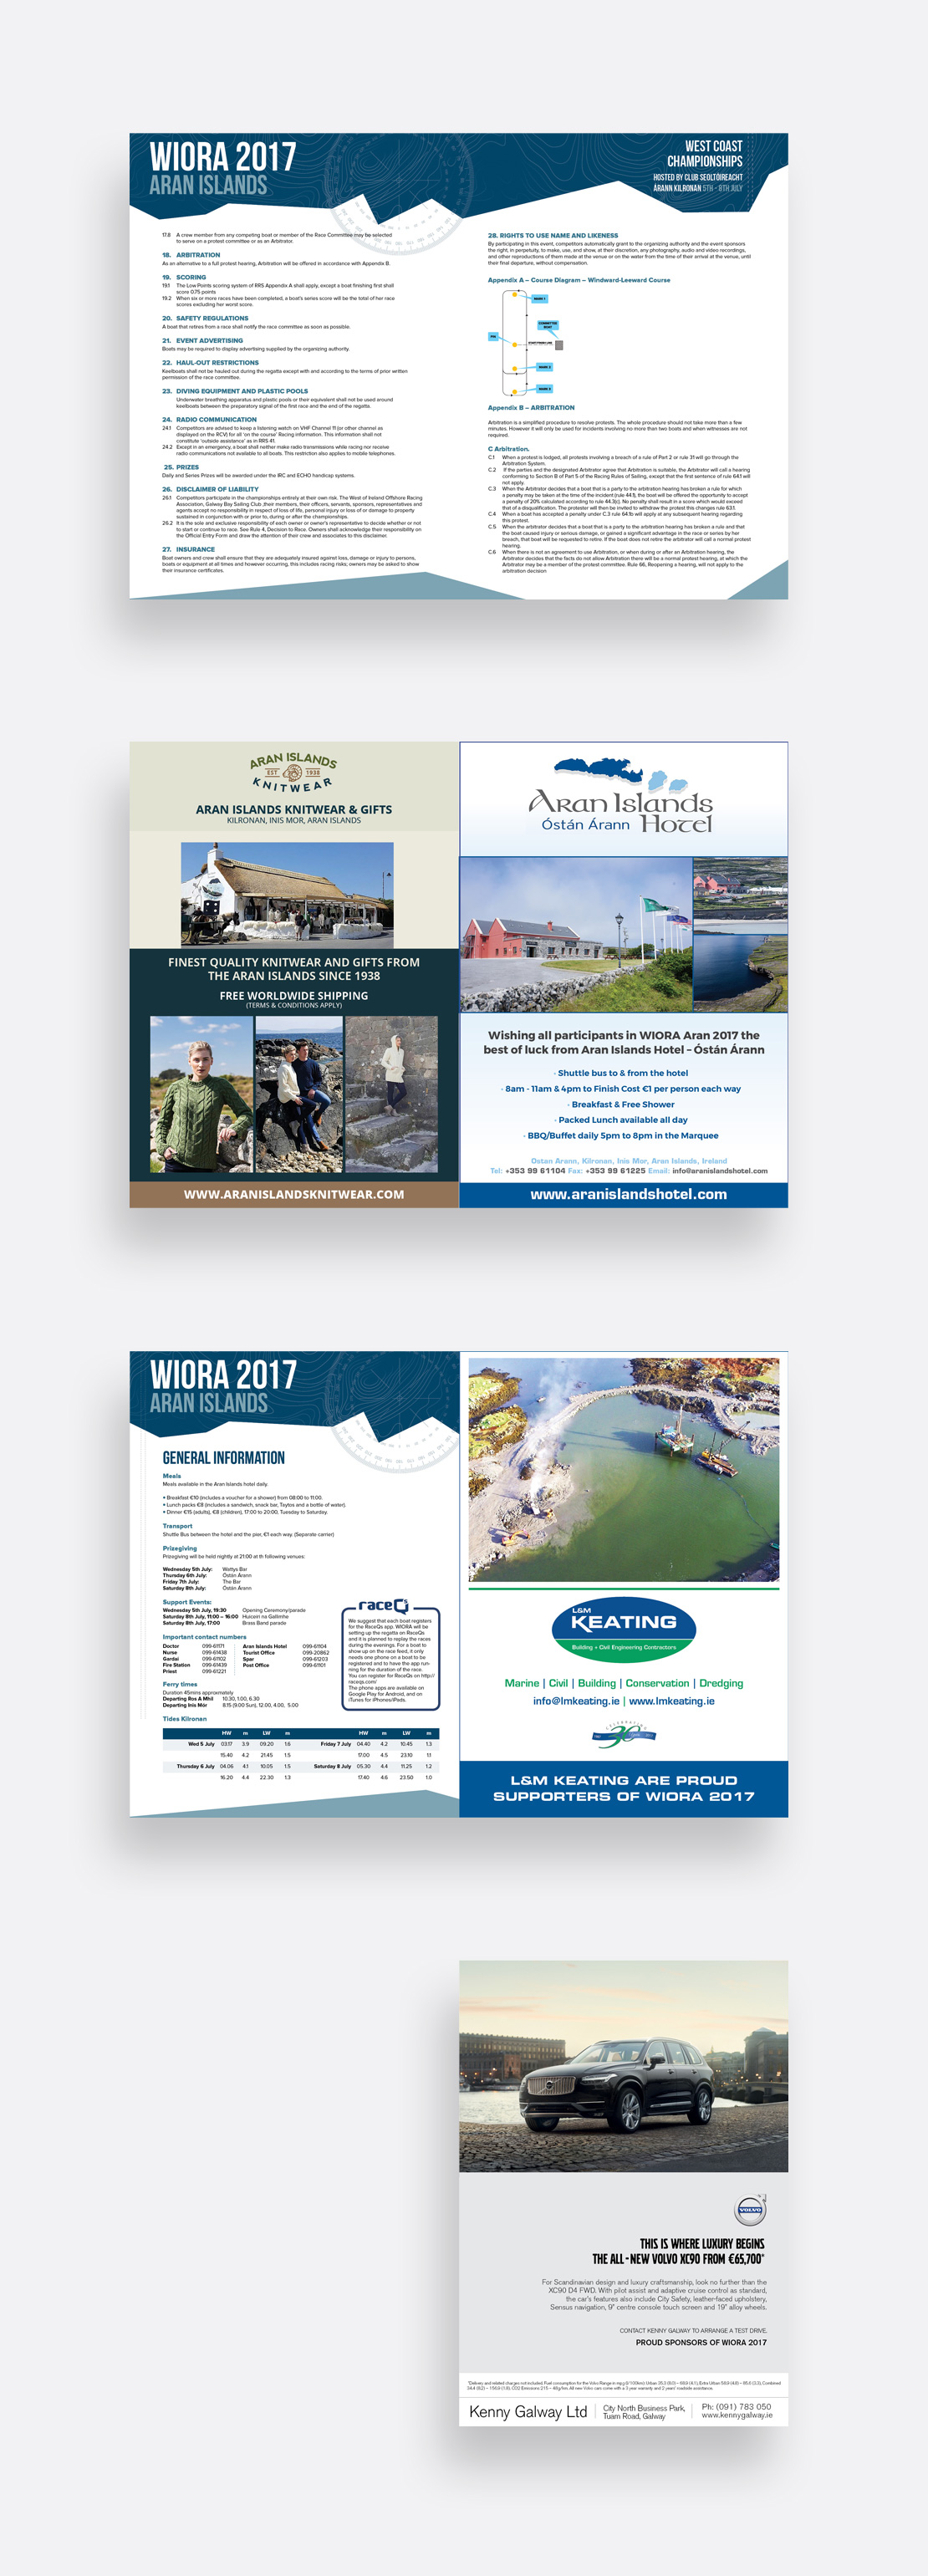 Waiora 2017 Aran Islands Yacht Race 28-page magazine